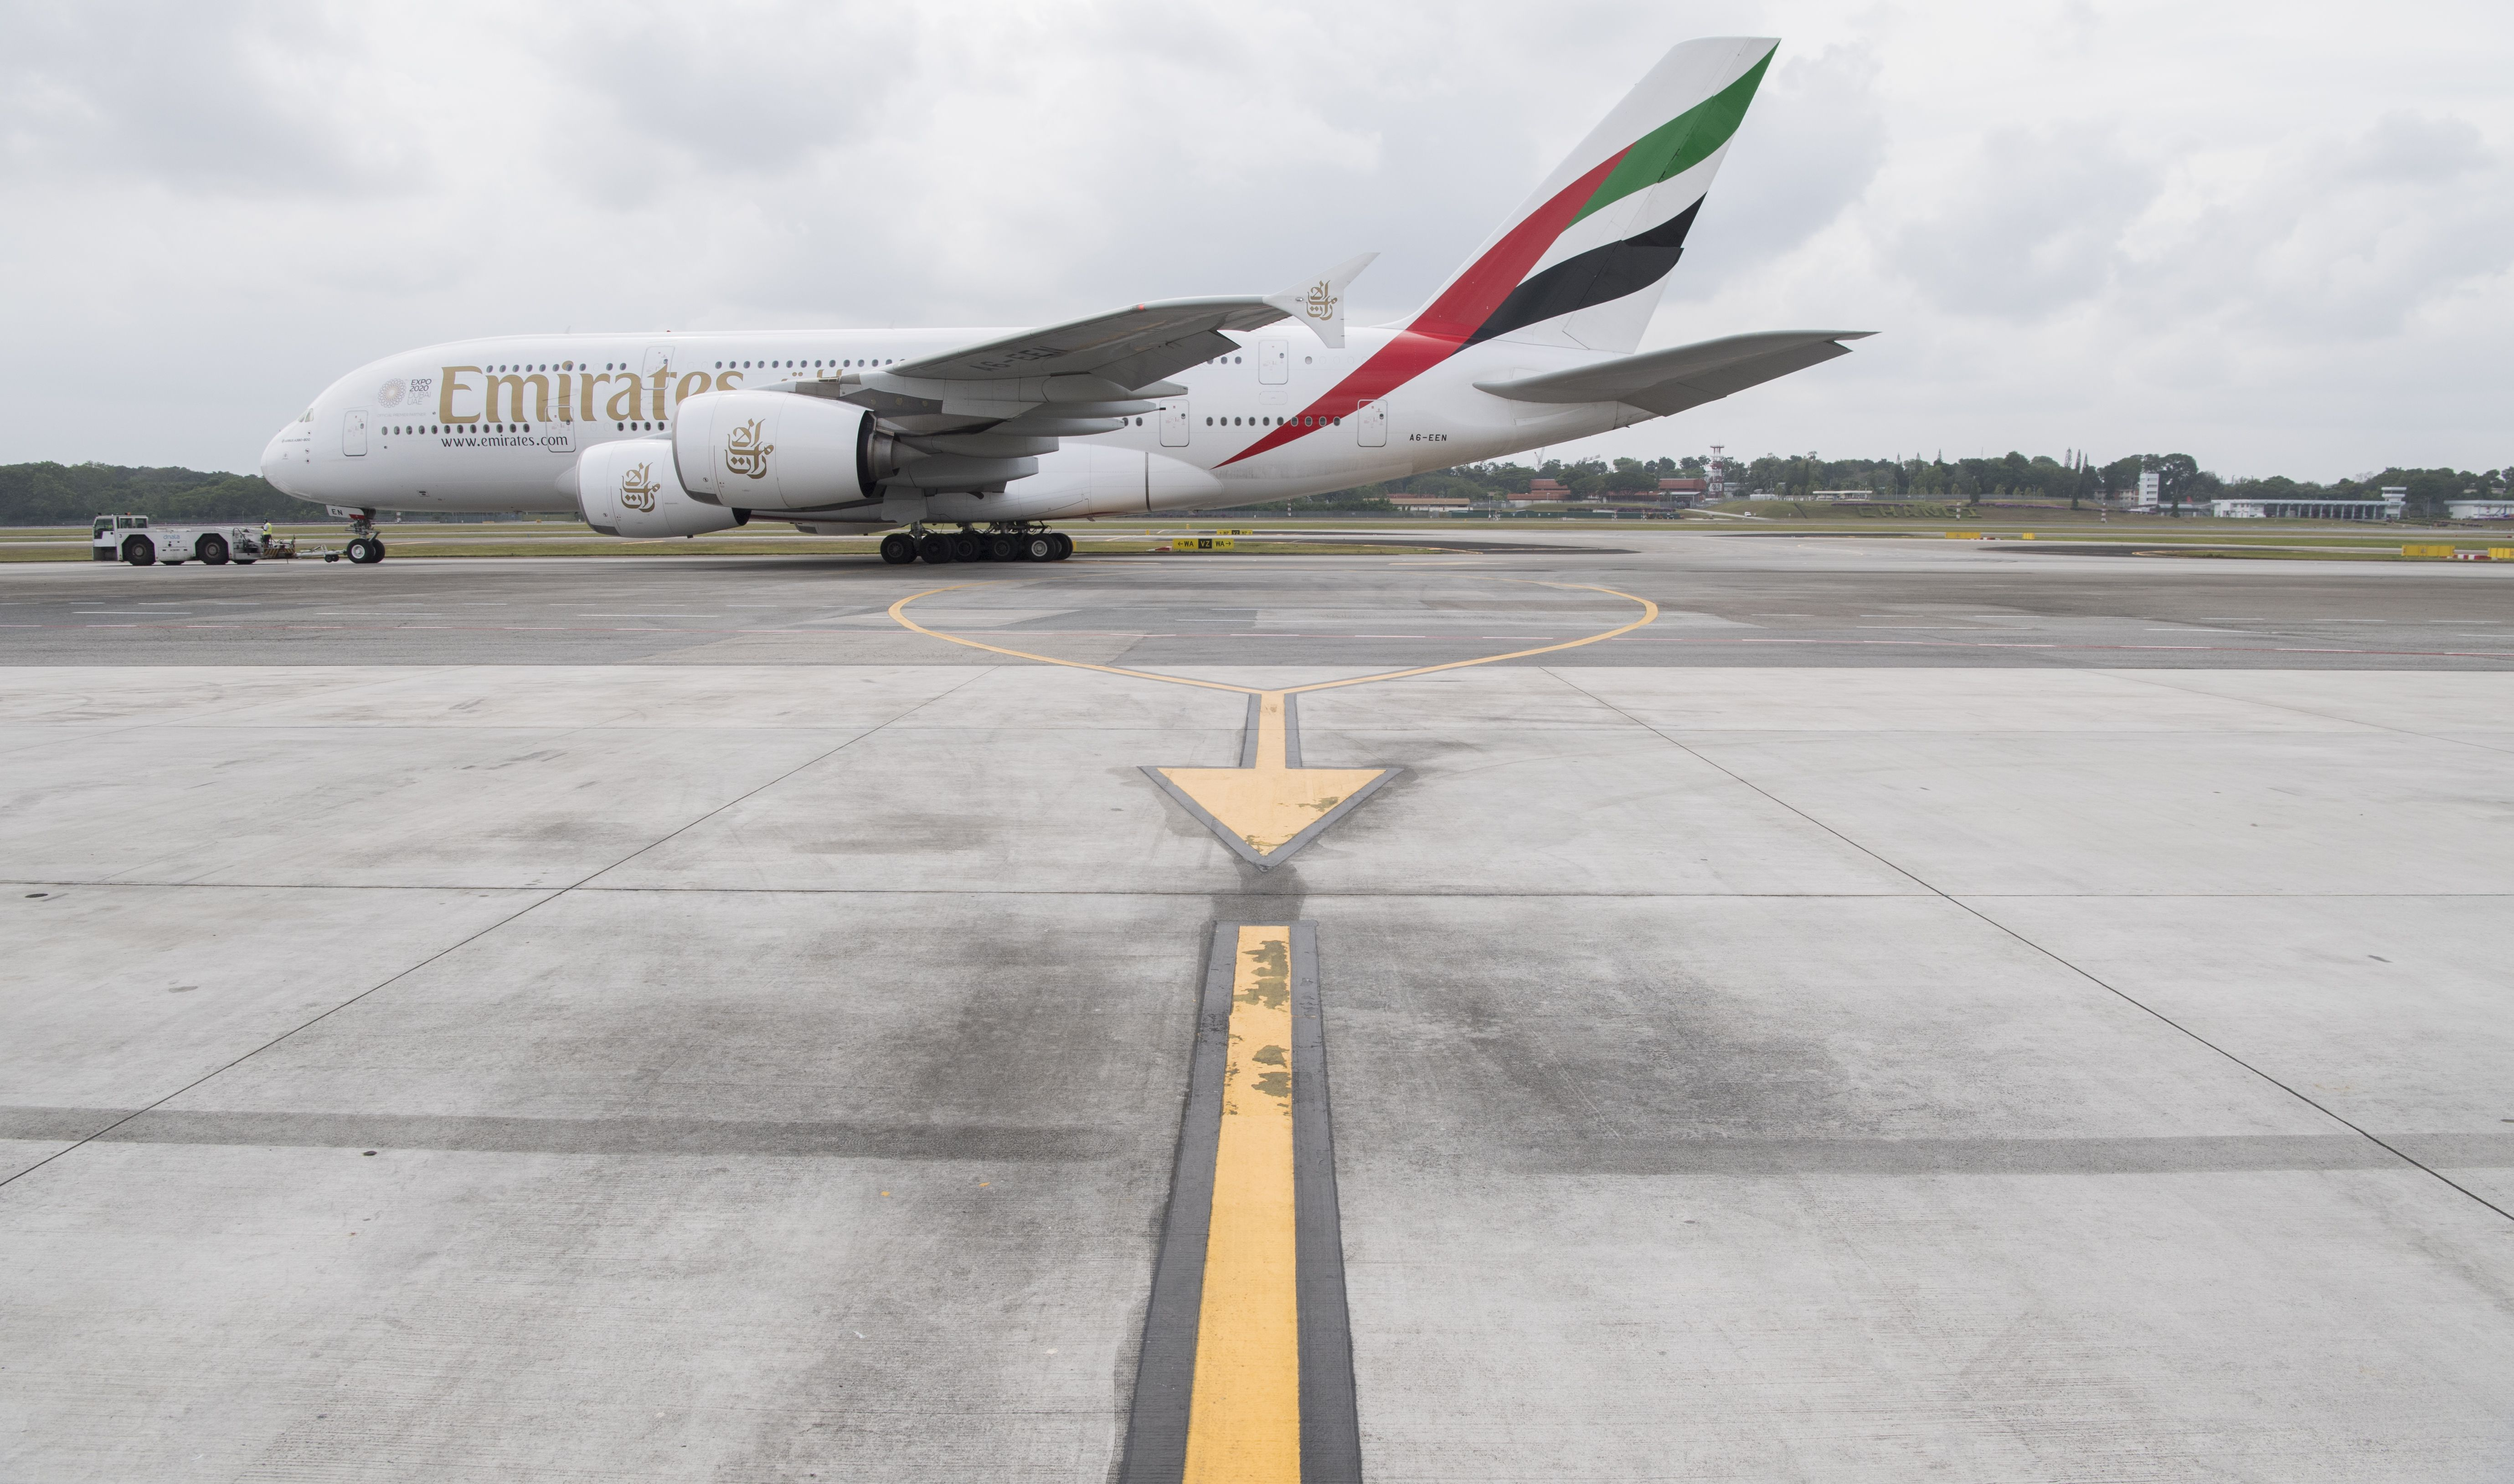 Emirates Airbus A380 on the ground at Singapore's Changi Airport